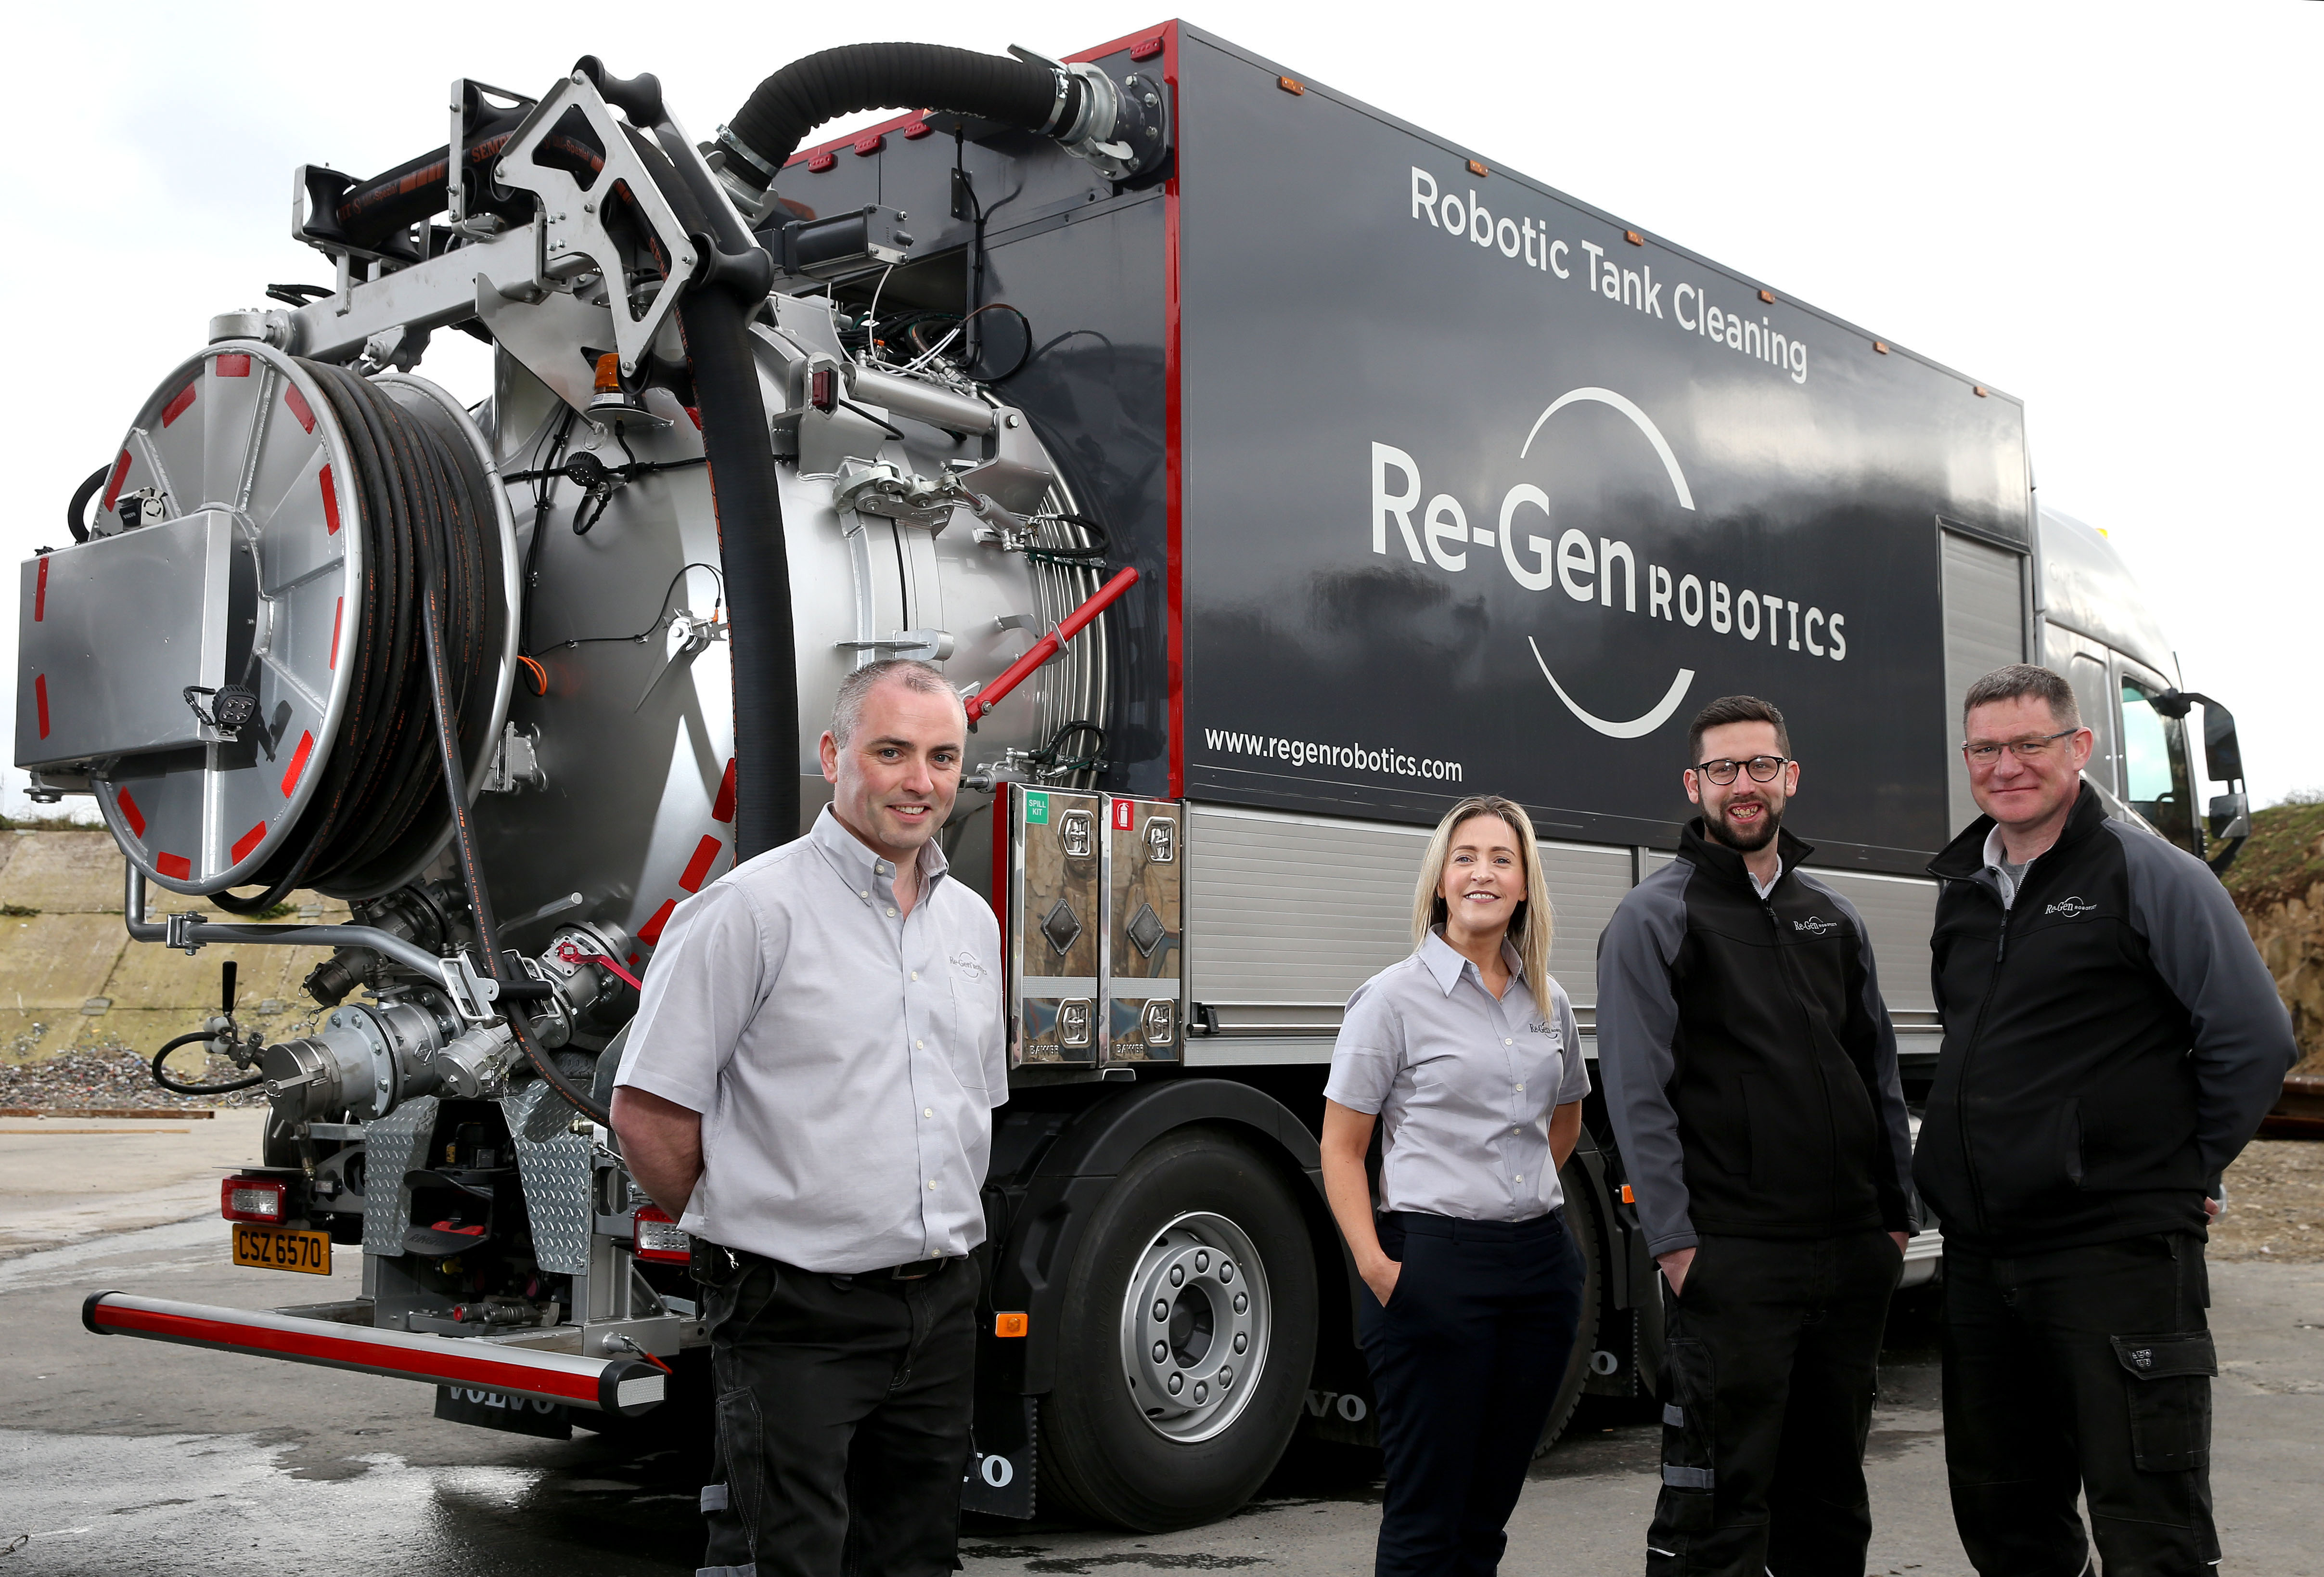 Re-Gen Robotics invests £1.5m in life-saving cleaning robots